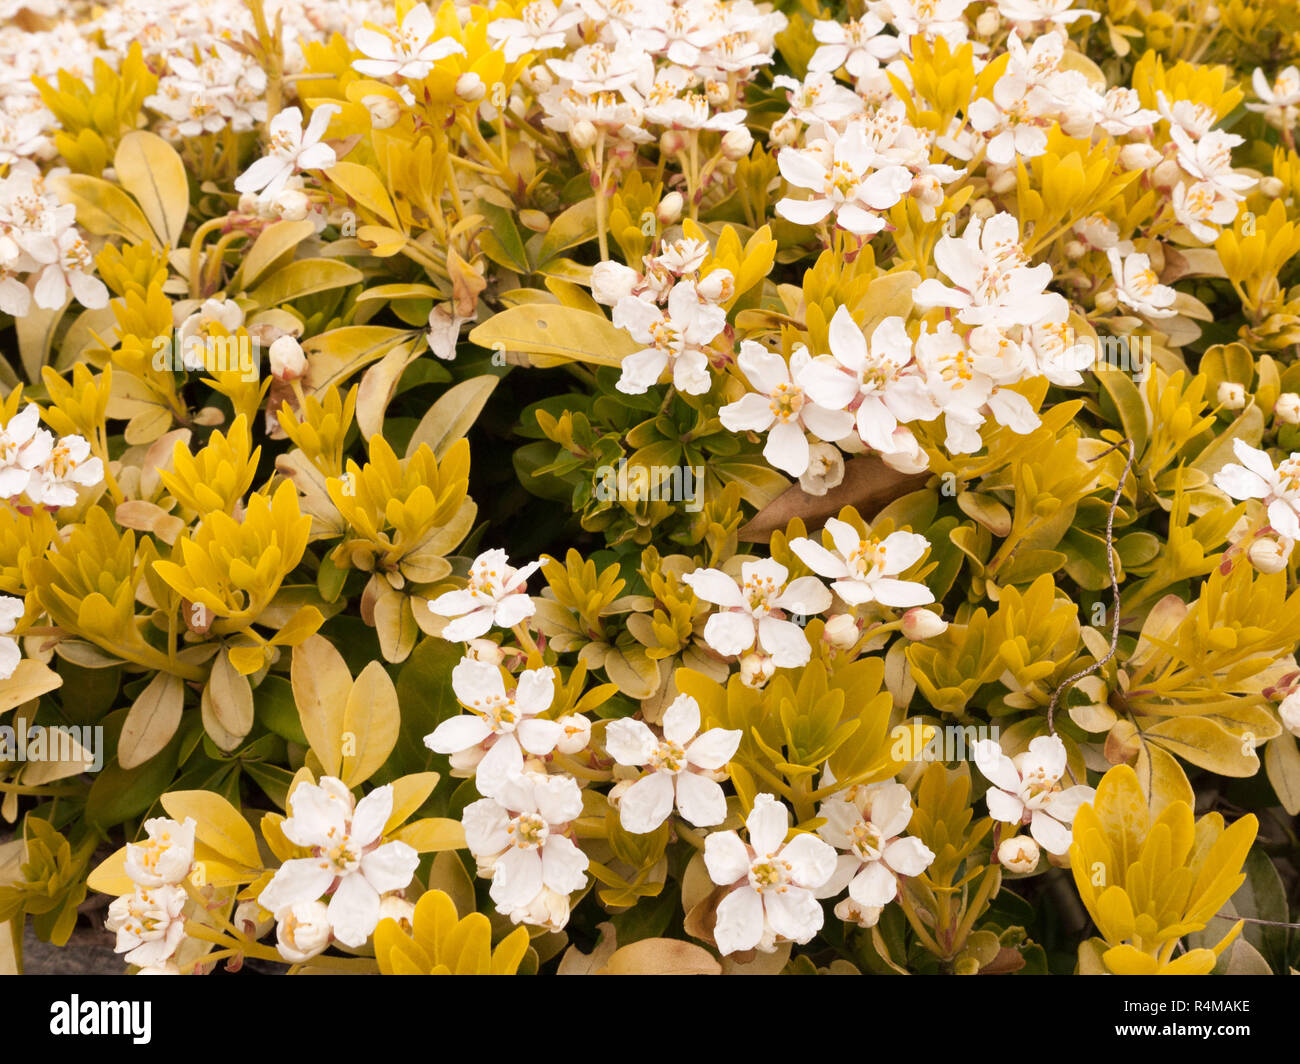 A Bunch Of White Flowers Mixed With Yellow Flowers To Create A